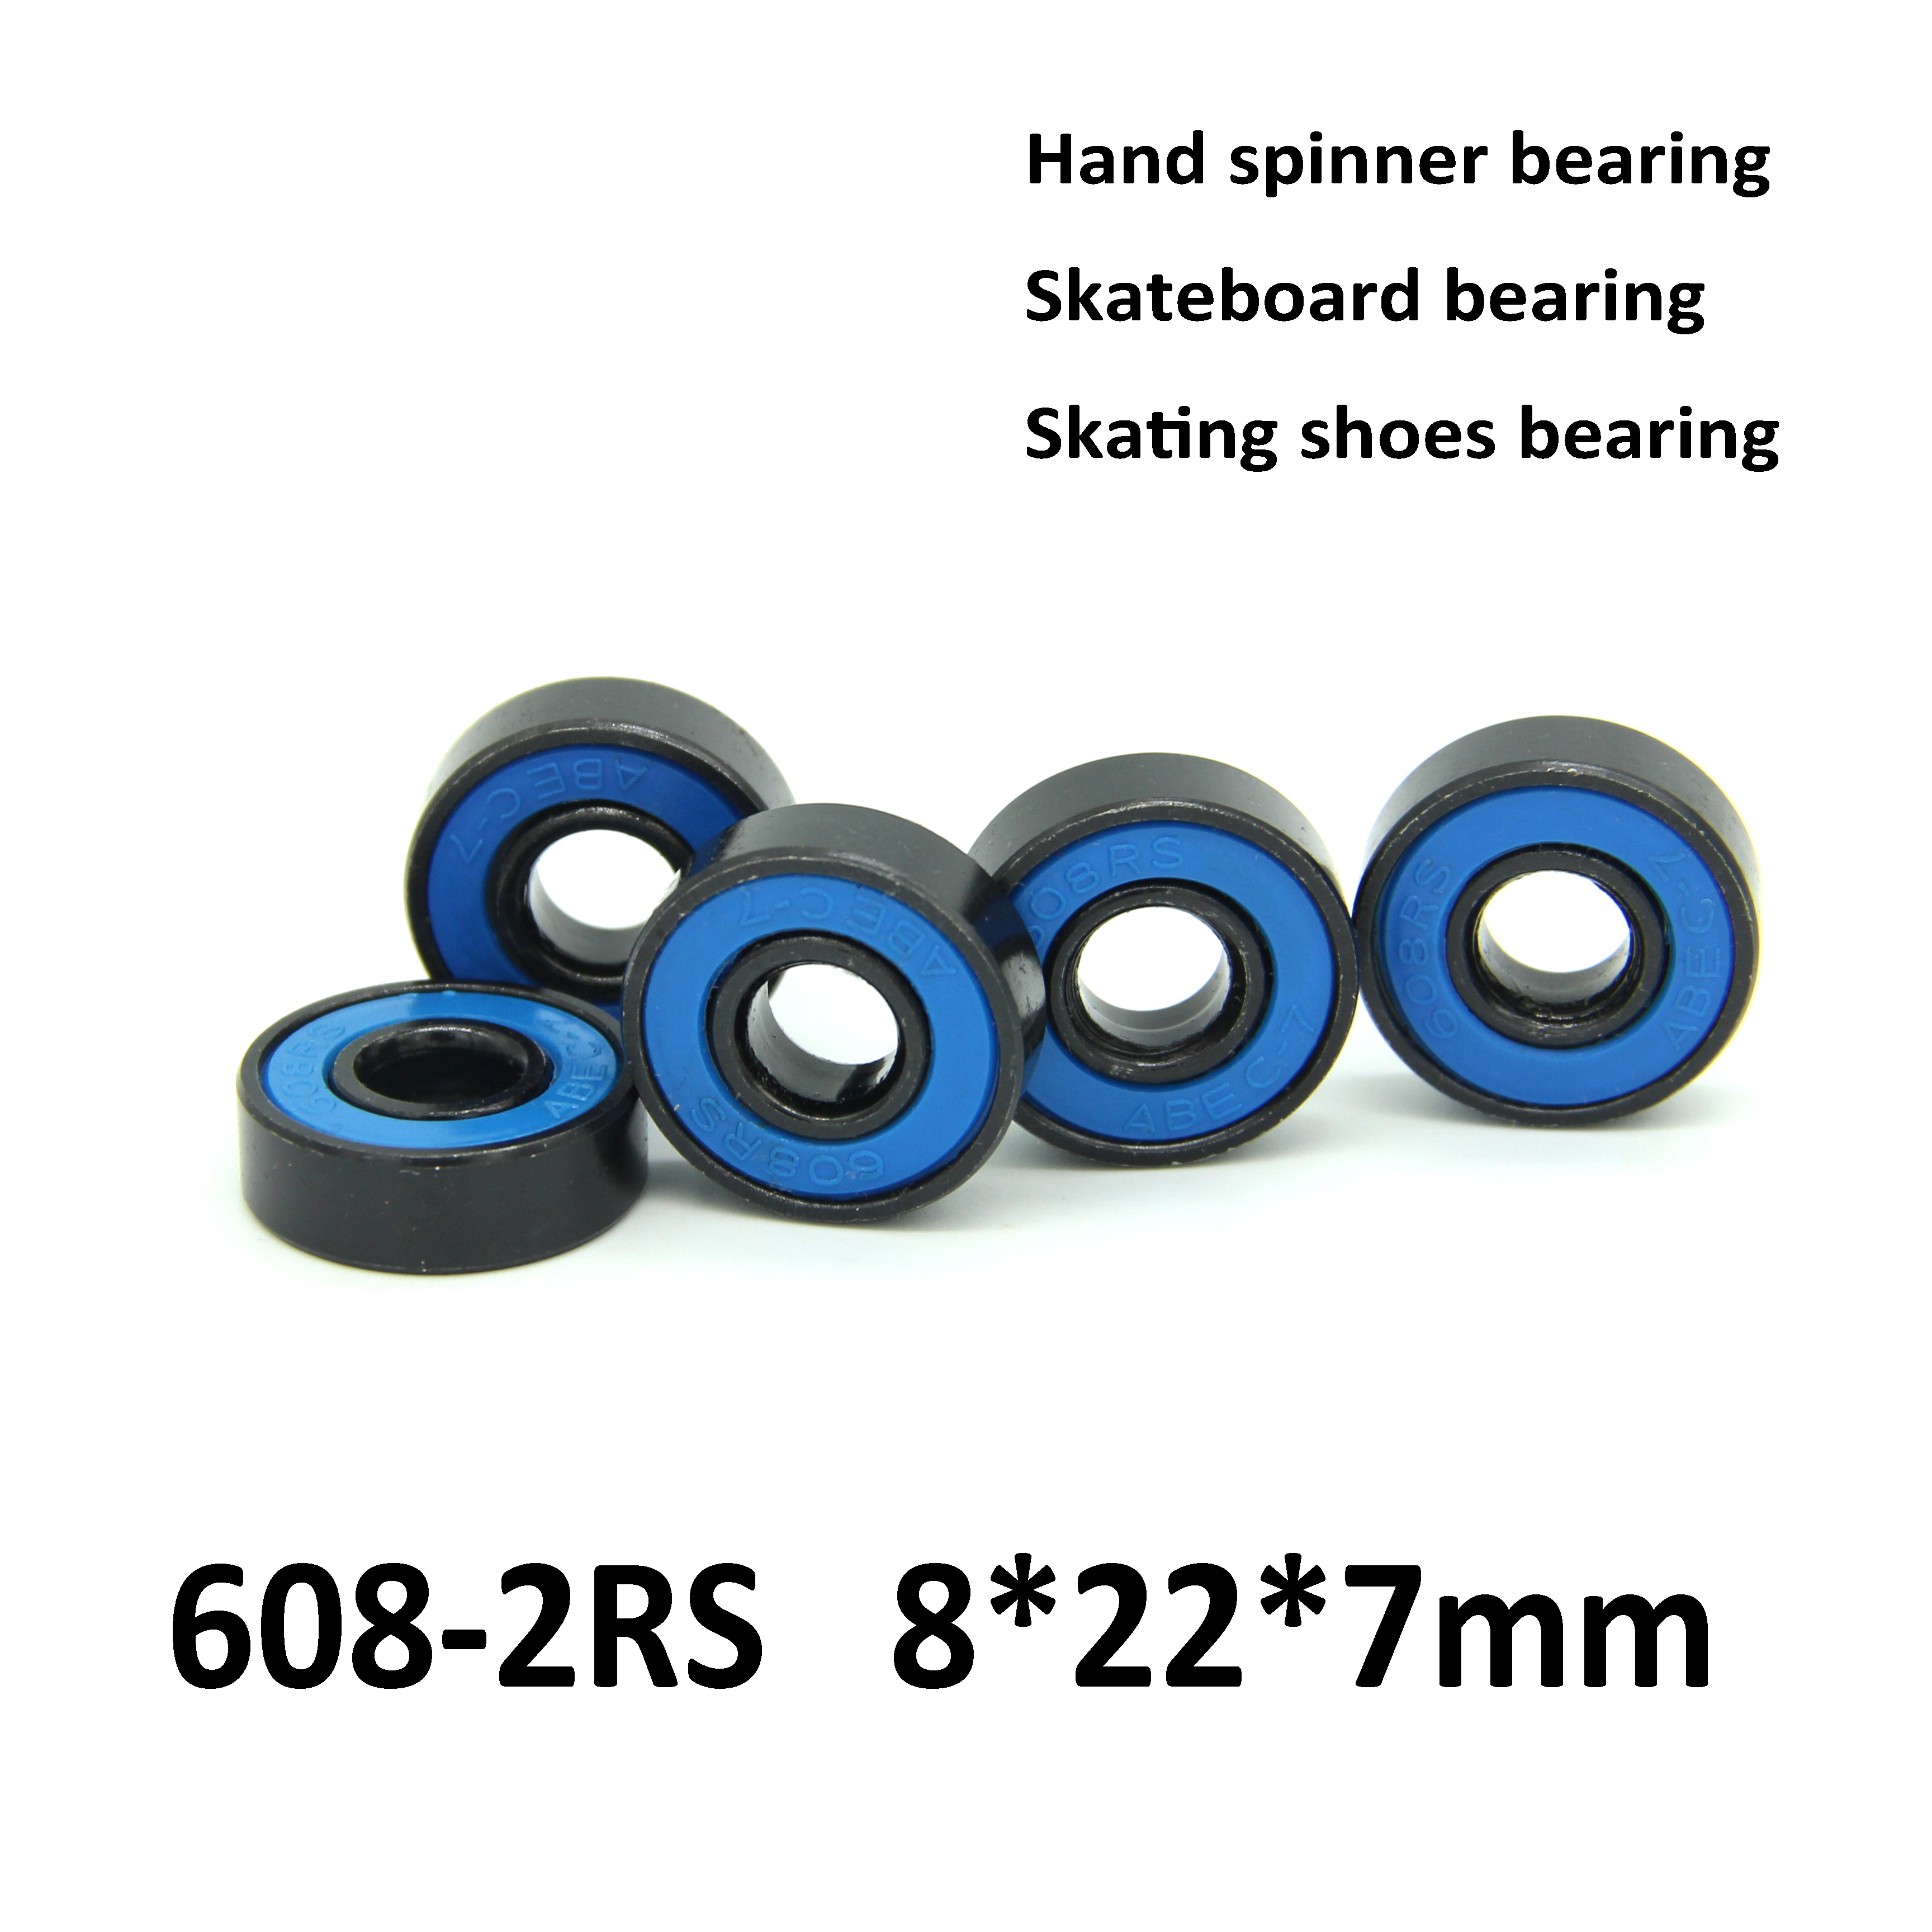 Free shipping 50pcs Skate board bearing 608-2RS 608RS 608 8x22x7mm different rubber closures 8*22*7mm  for hand spinner